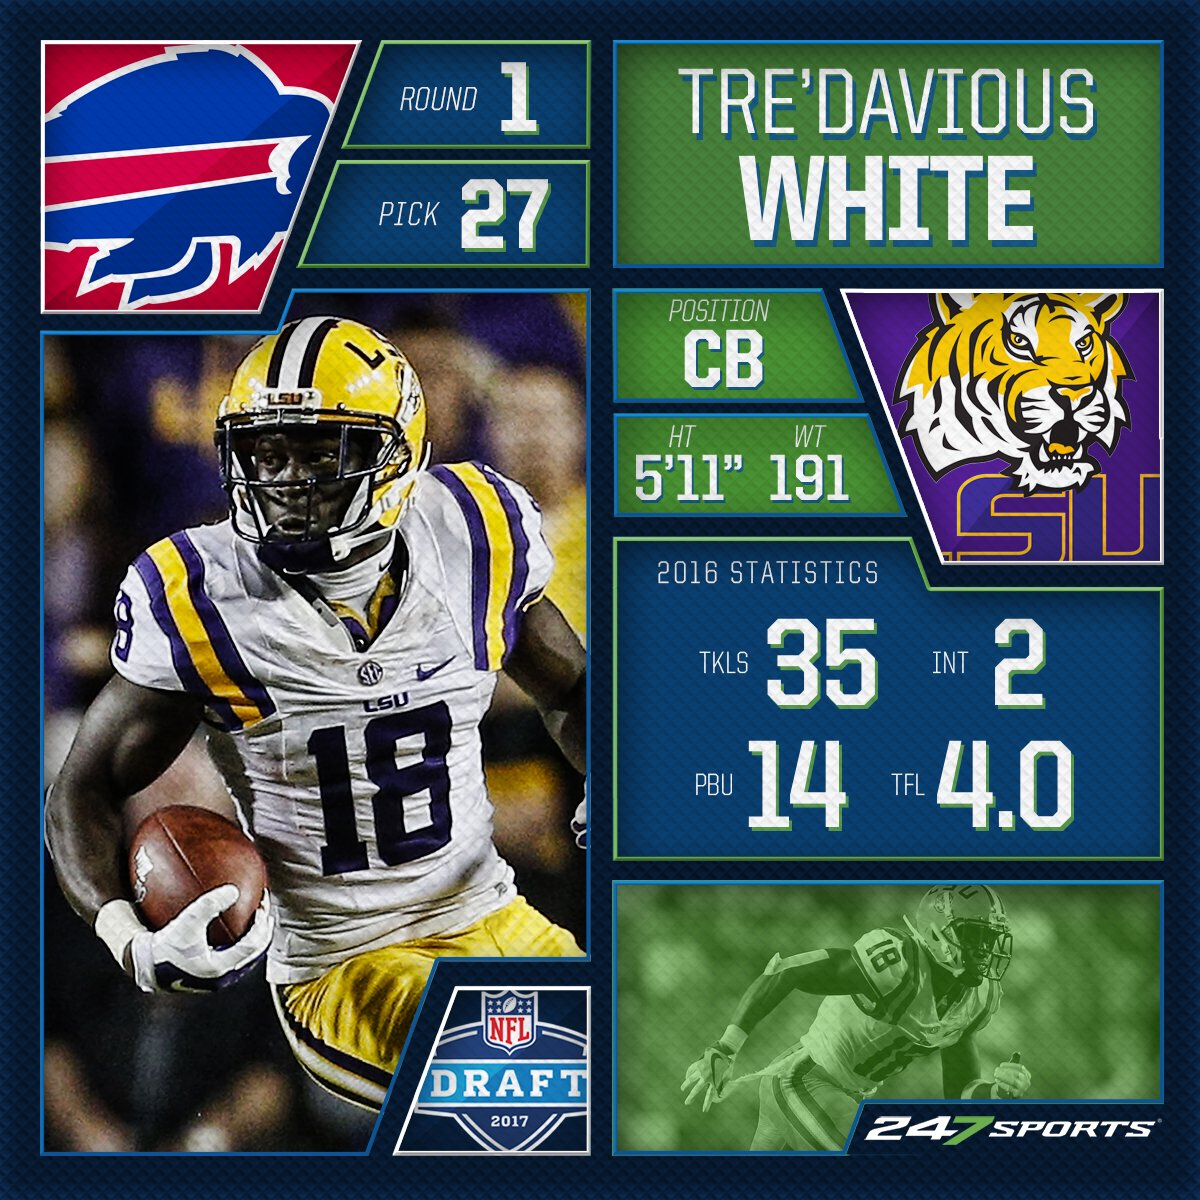 With the 27th pick in the #NFLDraft, the Bills select Tre'Davious Whit...